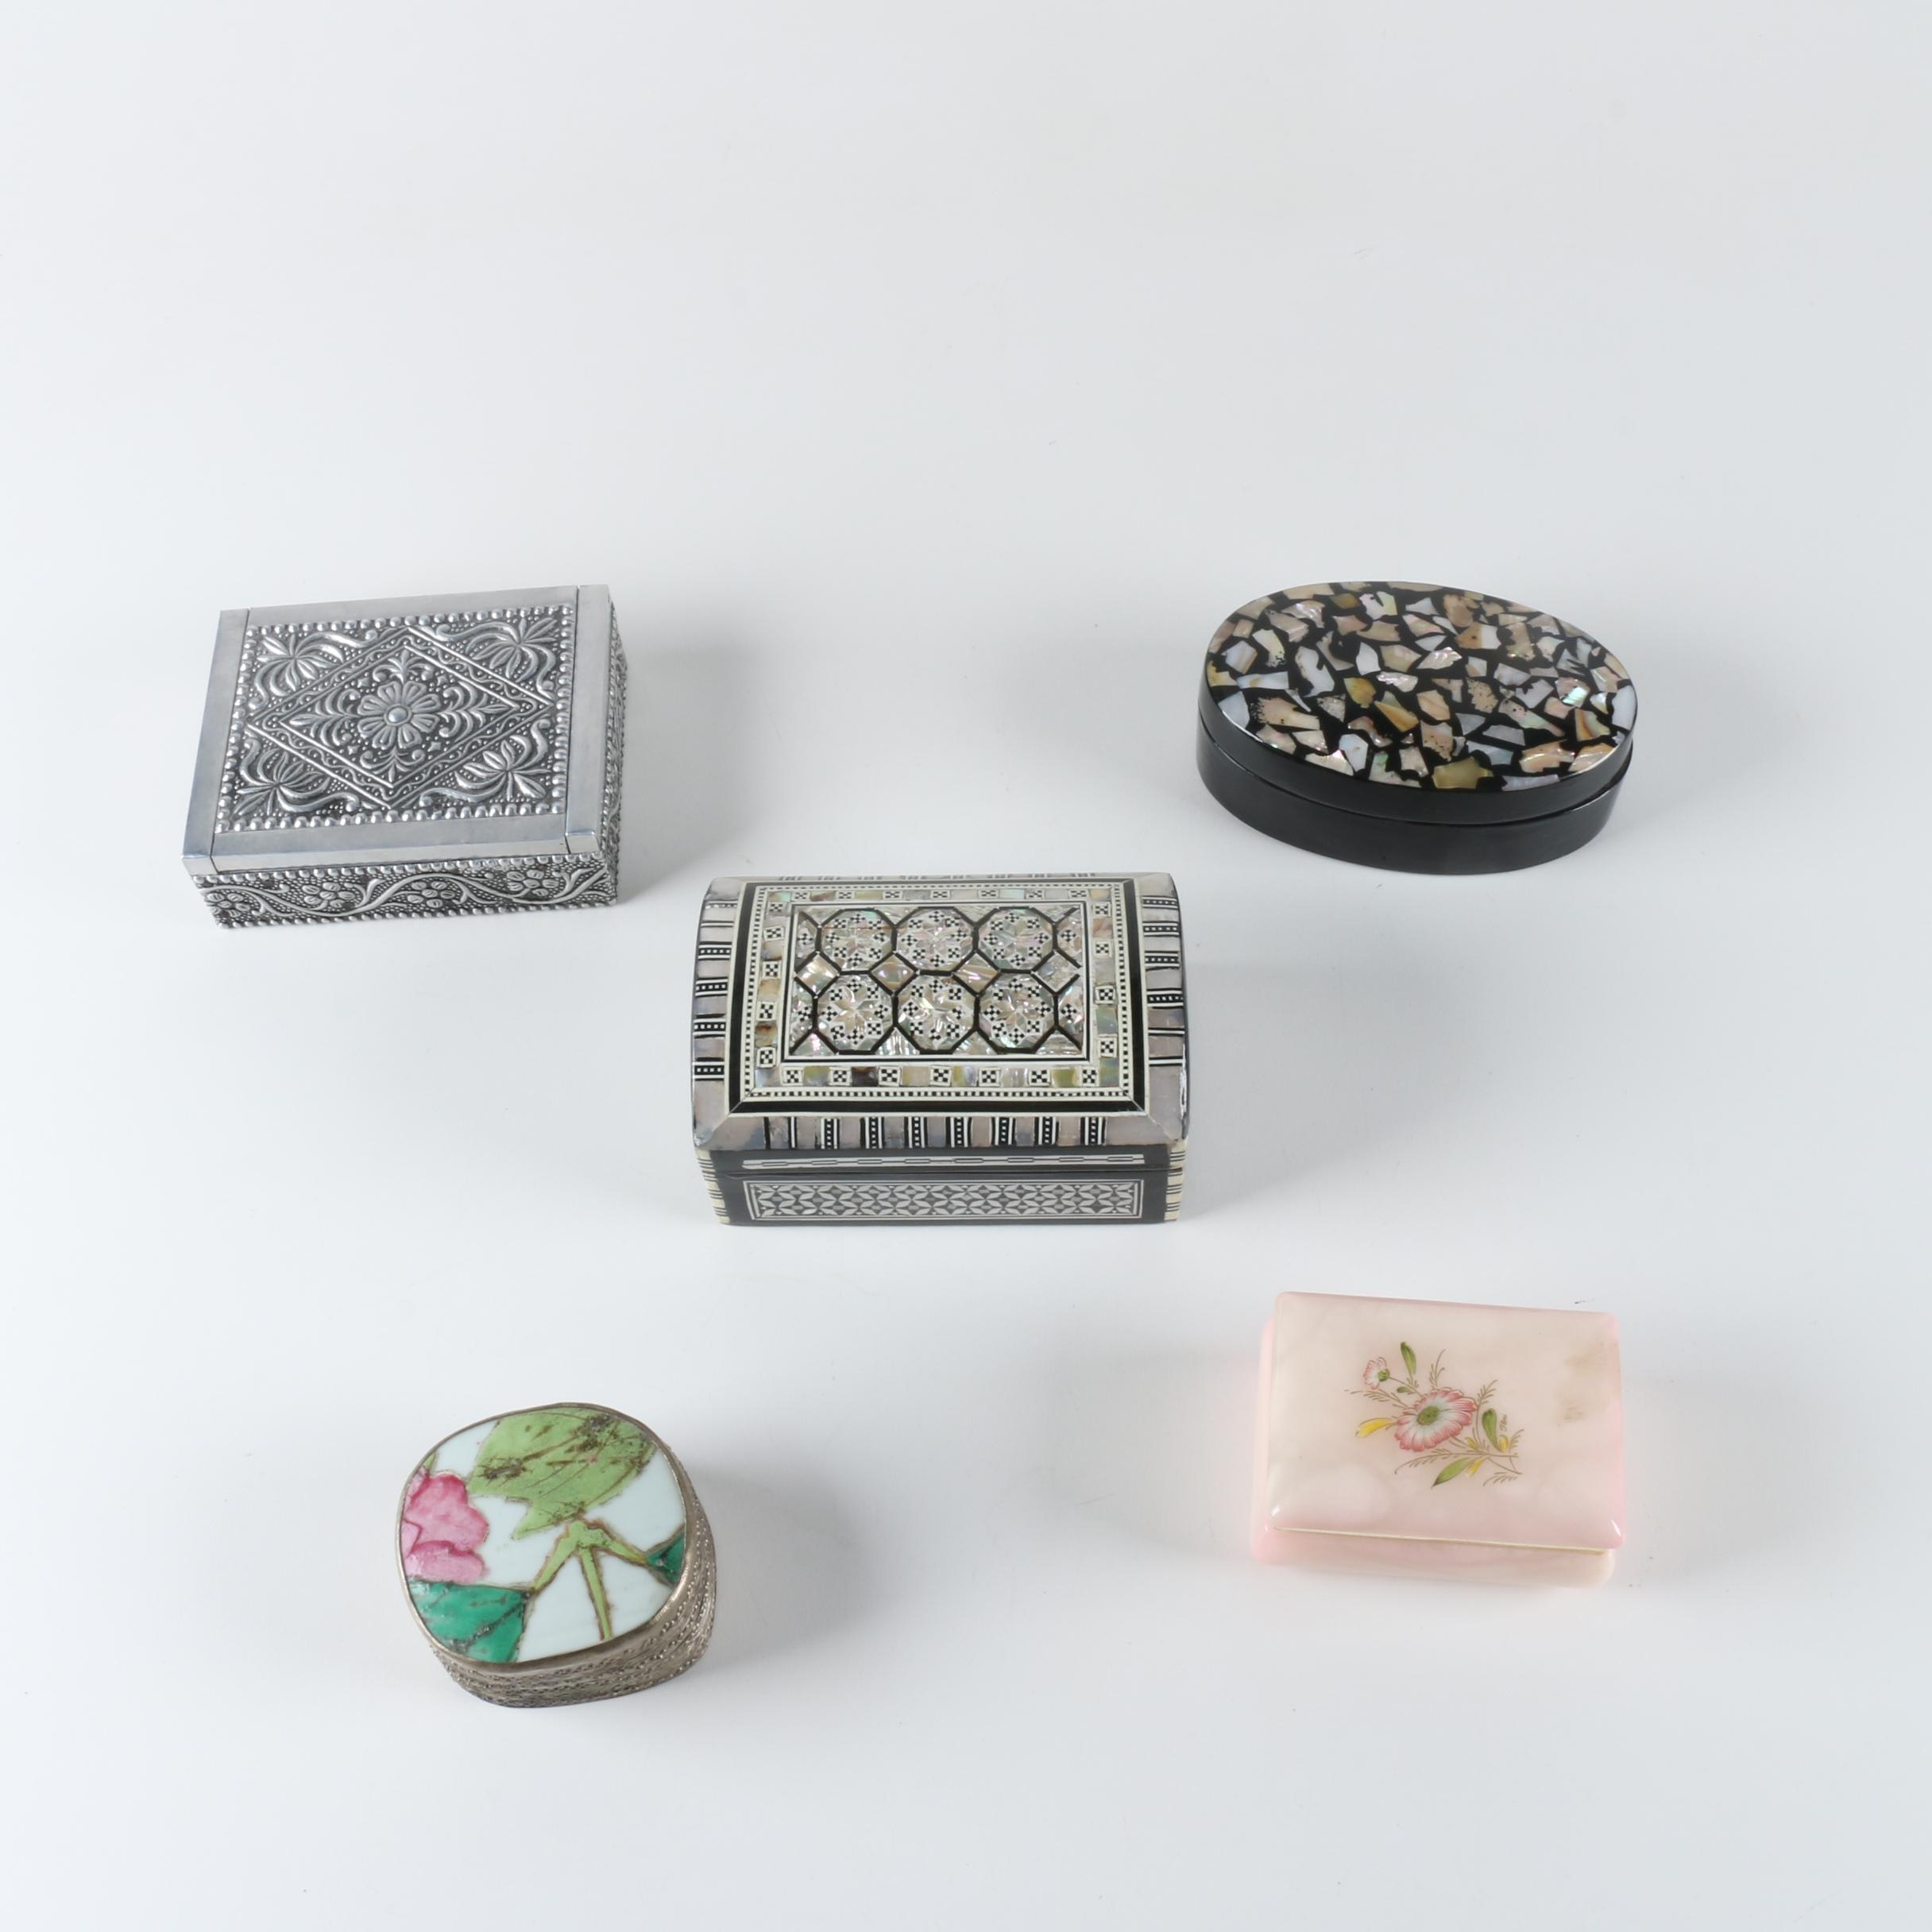 Assorted Pattern and Material Trinket Boxes